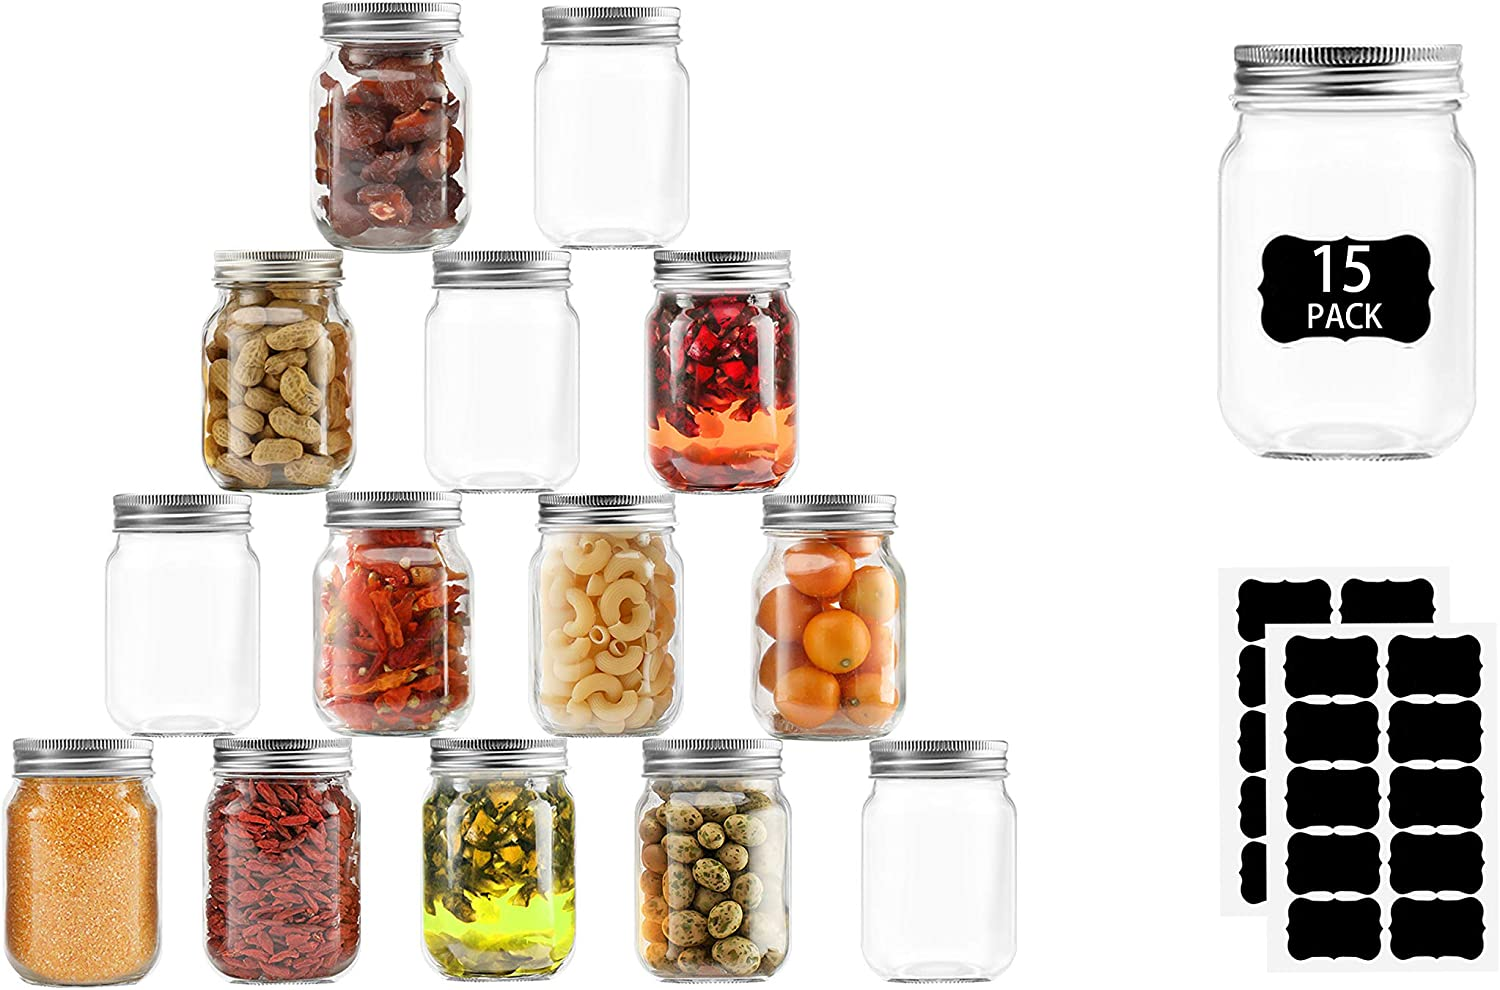 Mason jars 16 oz 15 Pack –Pint Maon Jars For Food Storage With Silver Metal Lids, Ideal For Pickle, Jam, Honey, Wedding Favors, Shower Favors, Baby Foods, Set Of 15 With 20 Labels